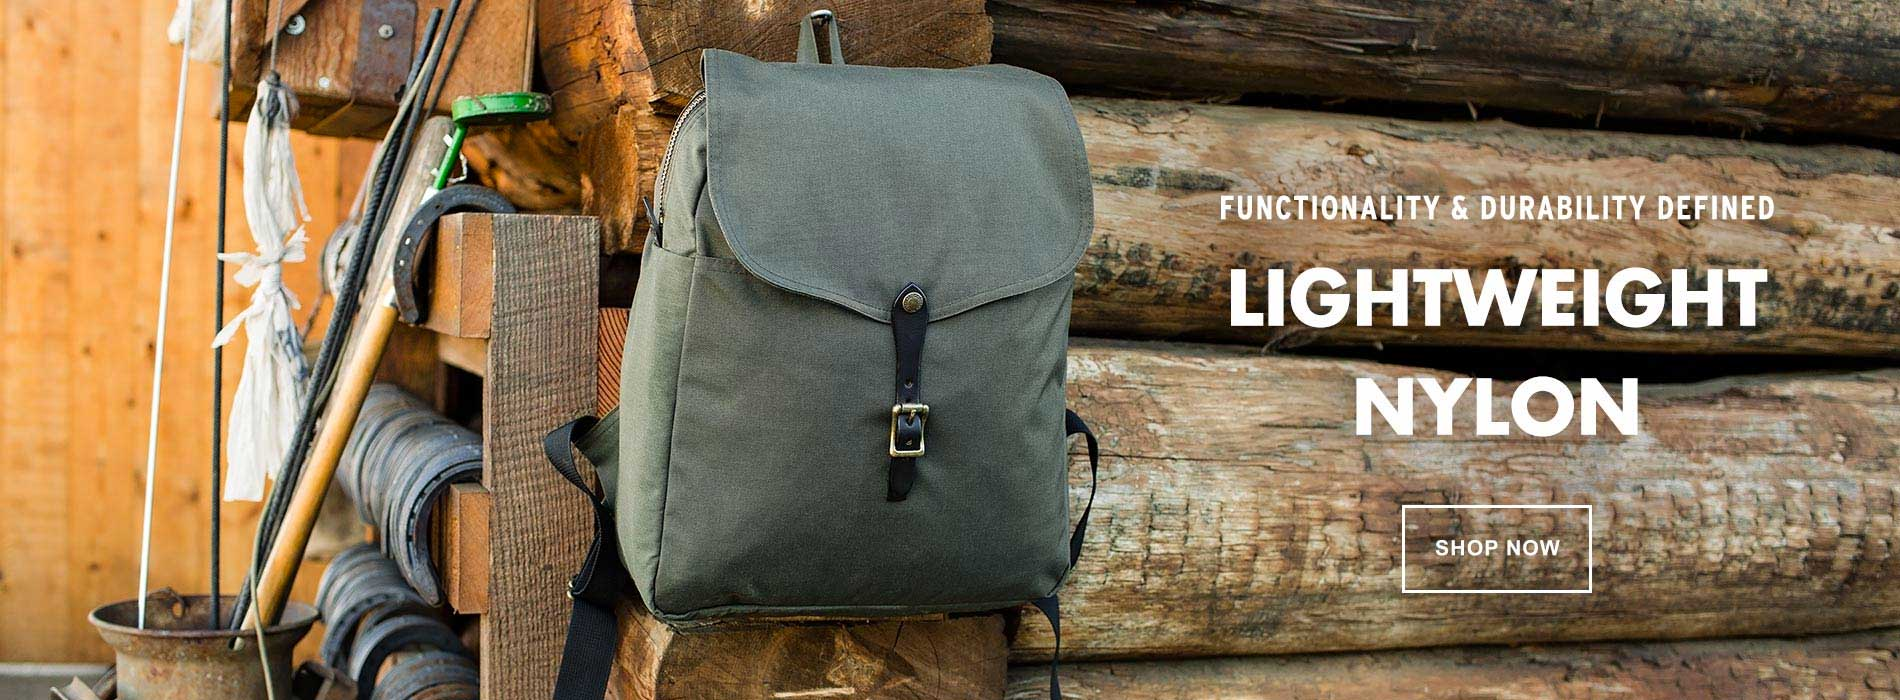 Filson Daypack Lightweight 70255 Functionality & Durability defined